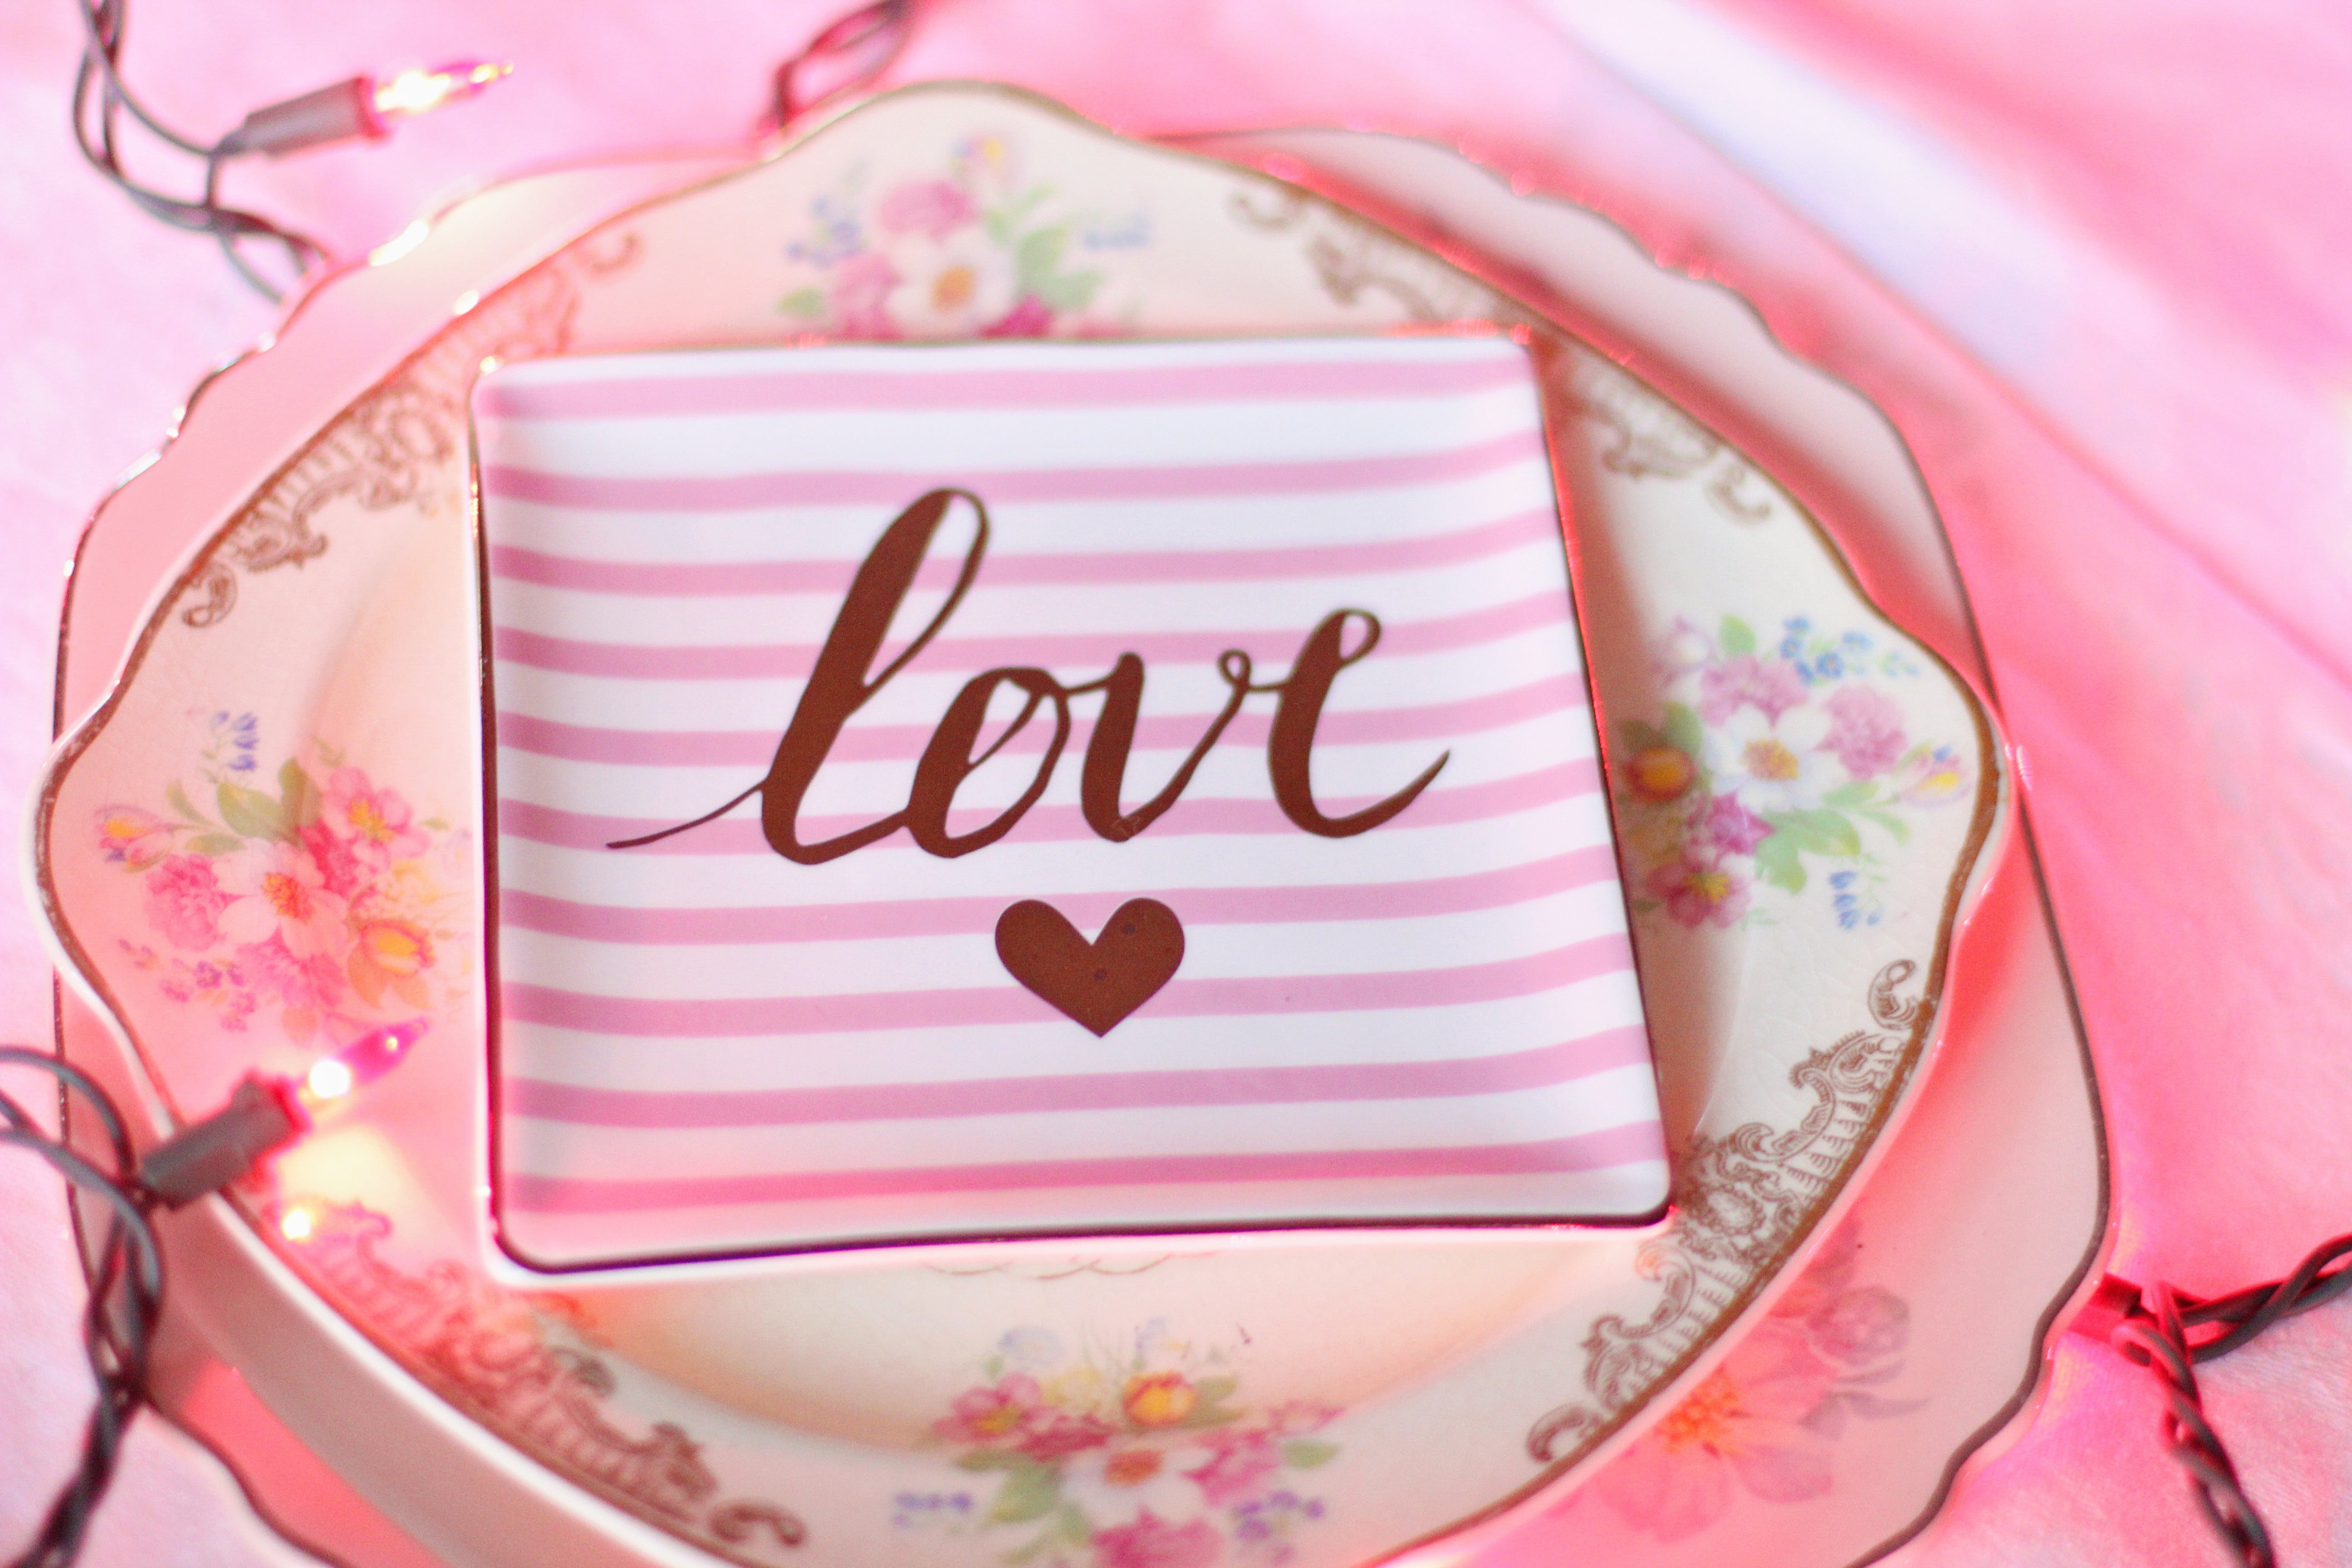 White and Pink Ceramic Plate